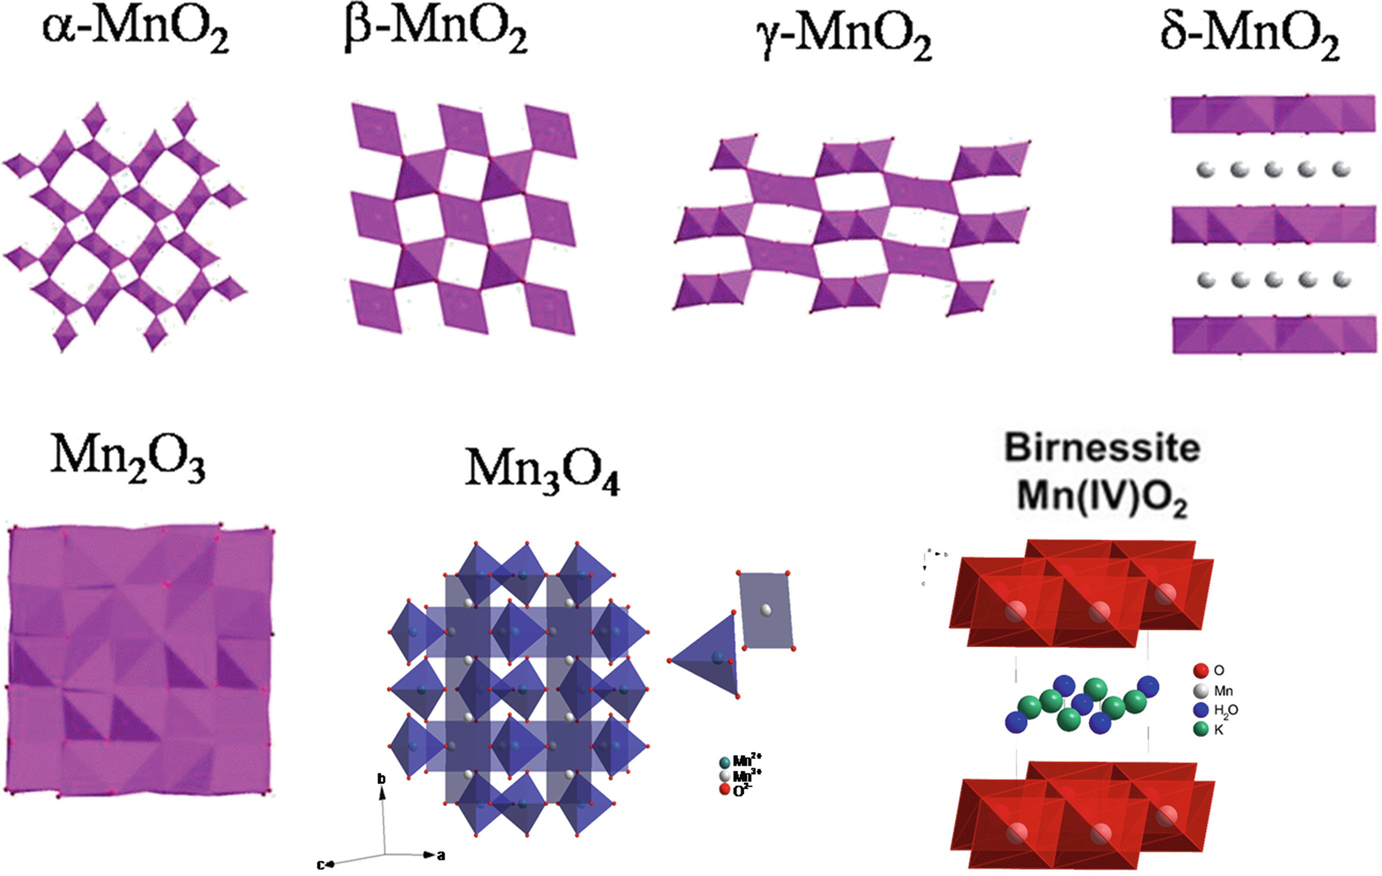 Nanostructured Metal Oxides for Supercapacitor Applications